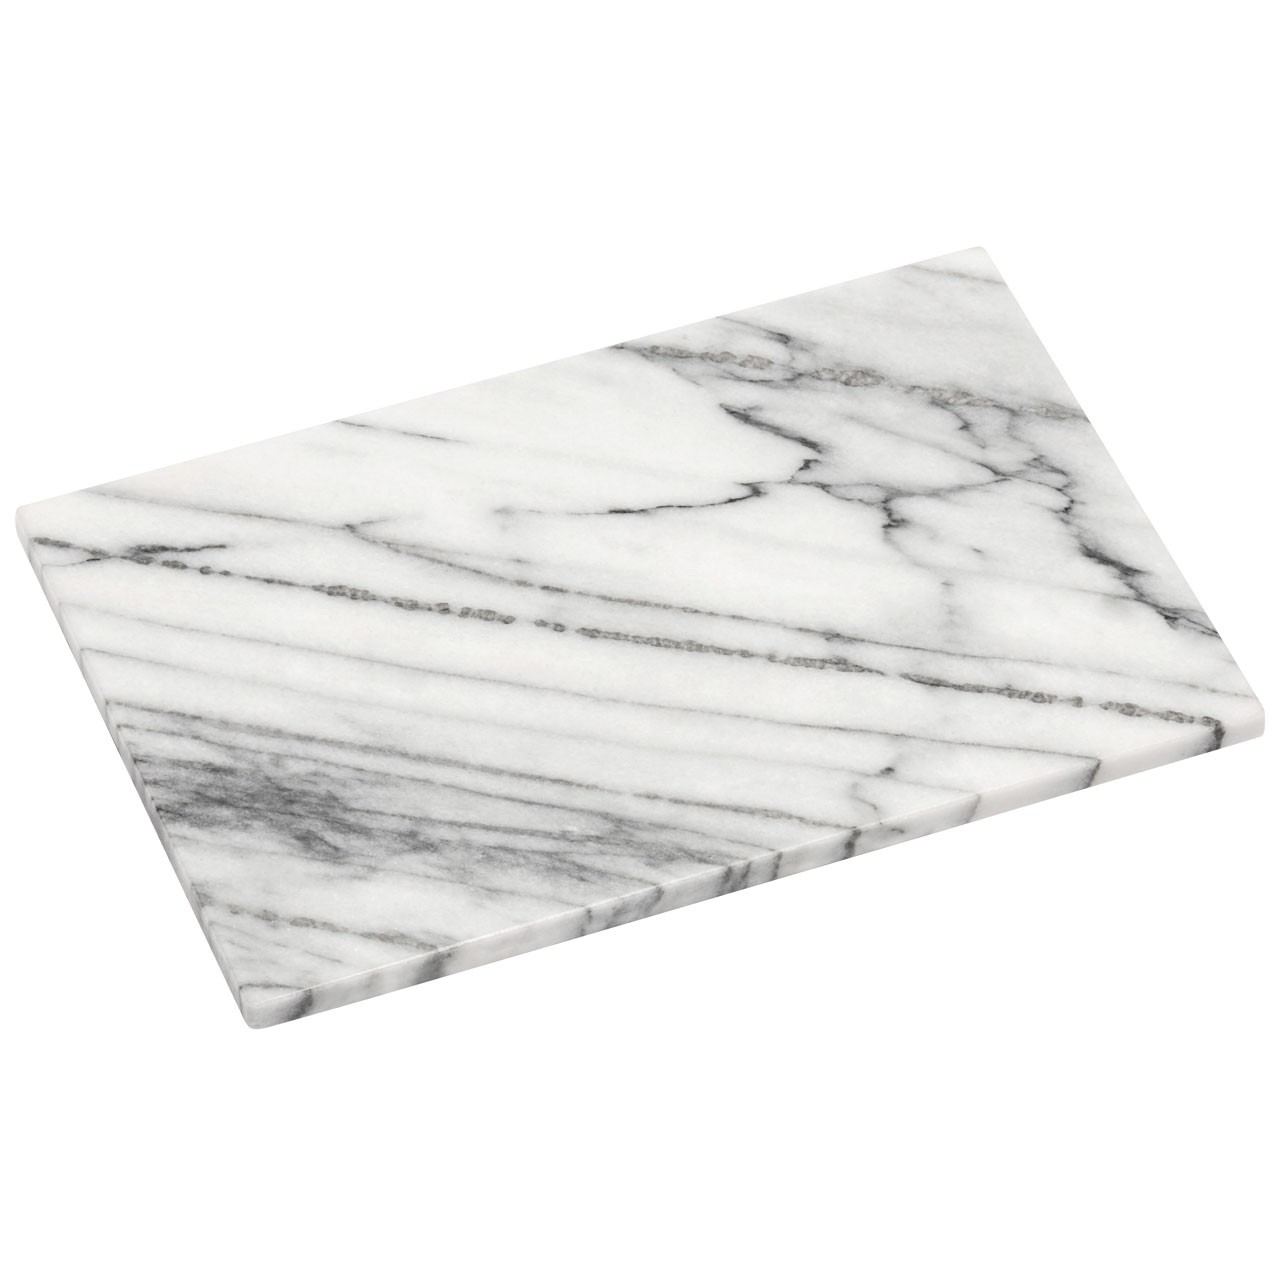 Chopping Board, White Marble